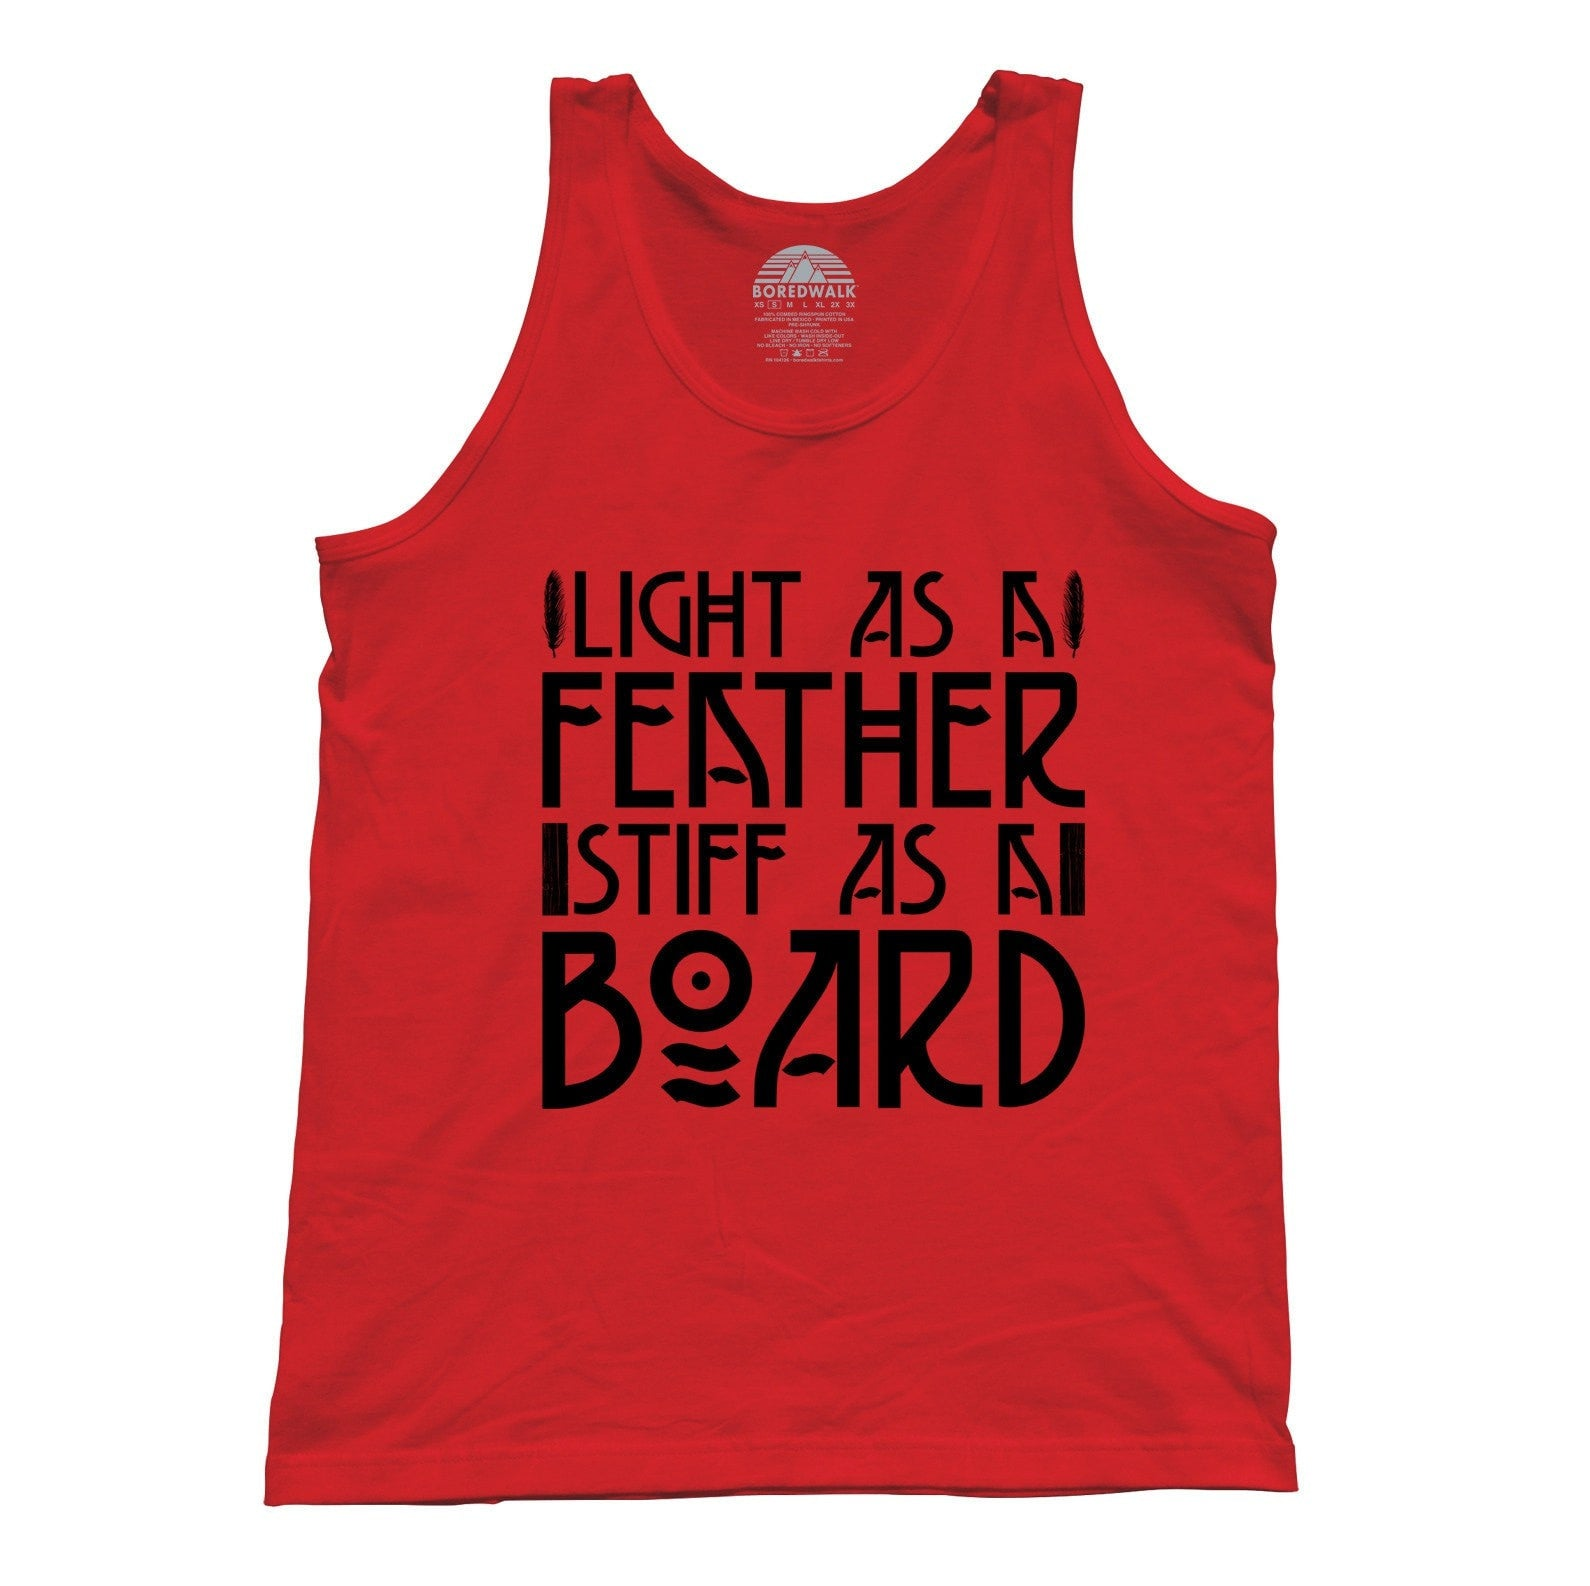 Unisex Light as a Feather Stiff as a Board Tank Top